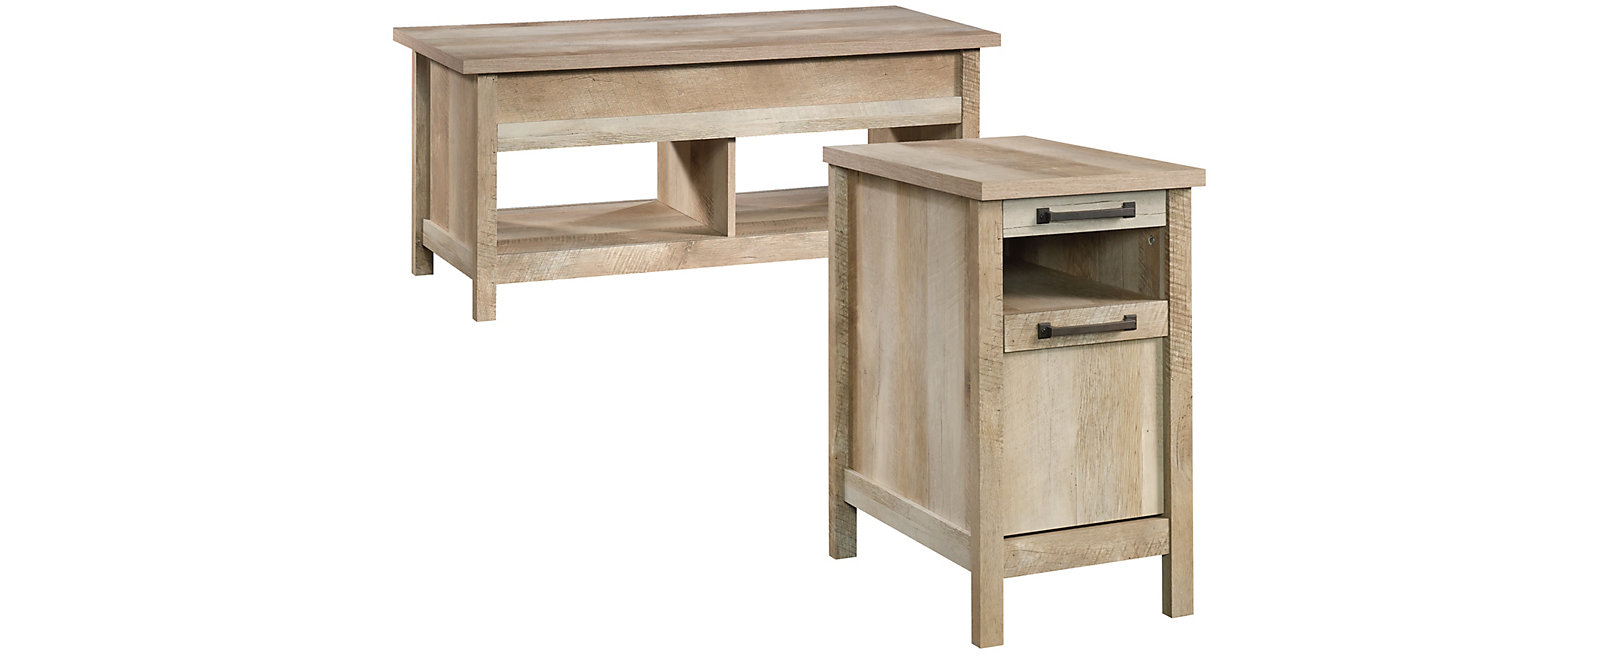 Cannery Table Collection, , large